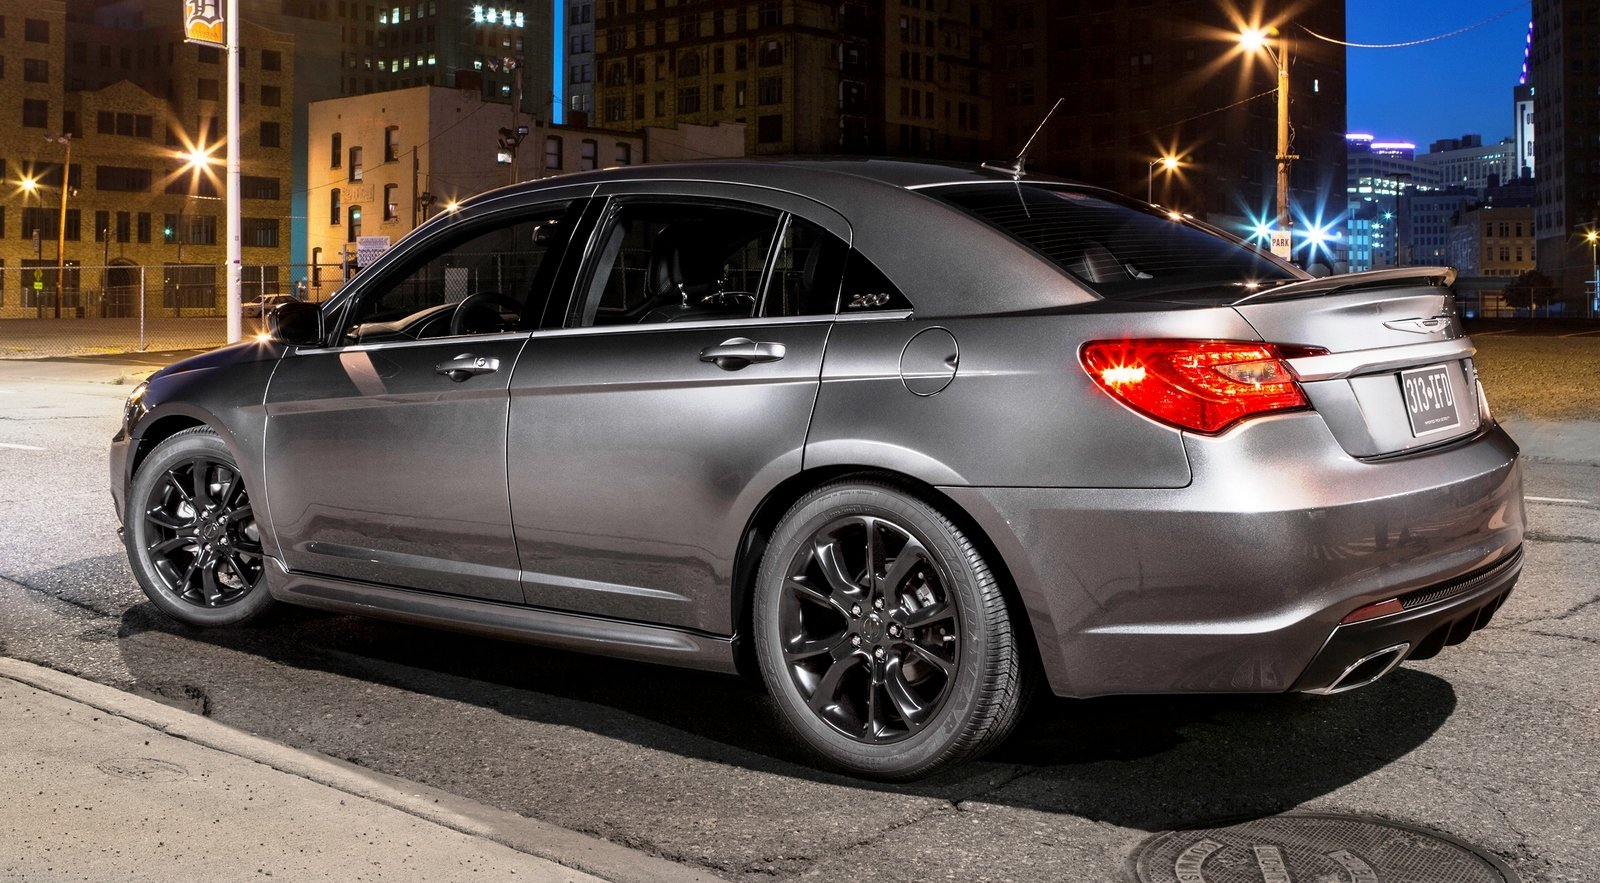 2013 chrysler 200 picture 516616 car review top speed. Black Bedroom Furniture Sets. Home Design Ideas